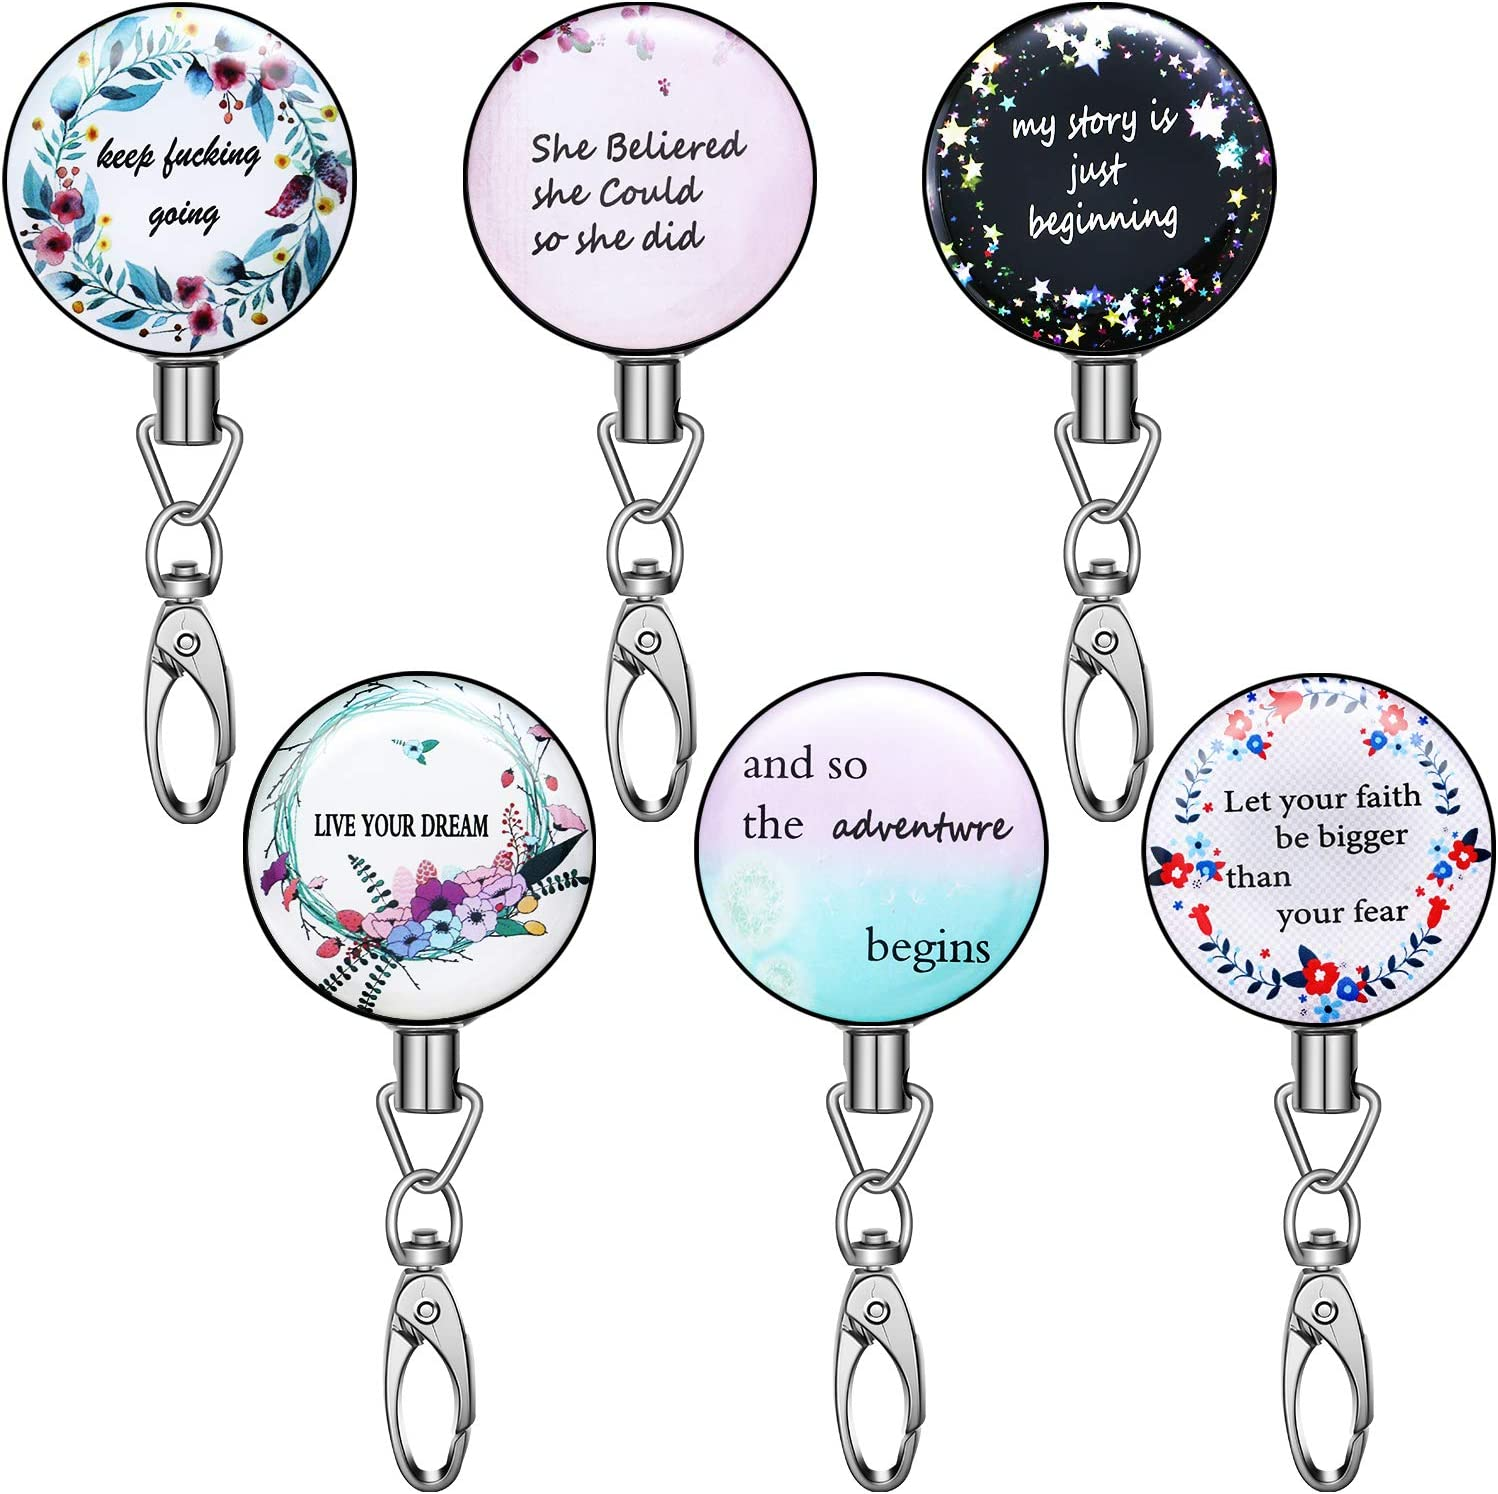 6 Pieces Decorative Retractable Badge Reel Inspirational Quote Retractable Key Chain Retractable Name Card Badge Keychain with Clip for Office Lady Nurse Students Teachers Bible Verses Supplies